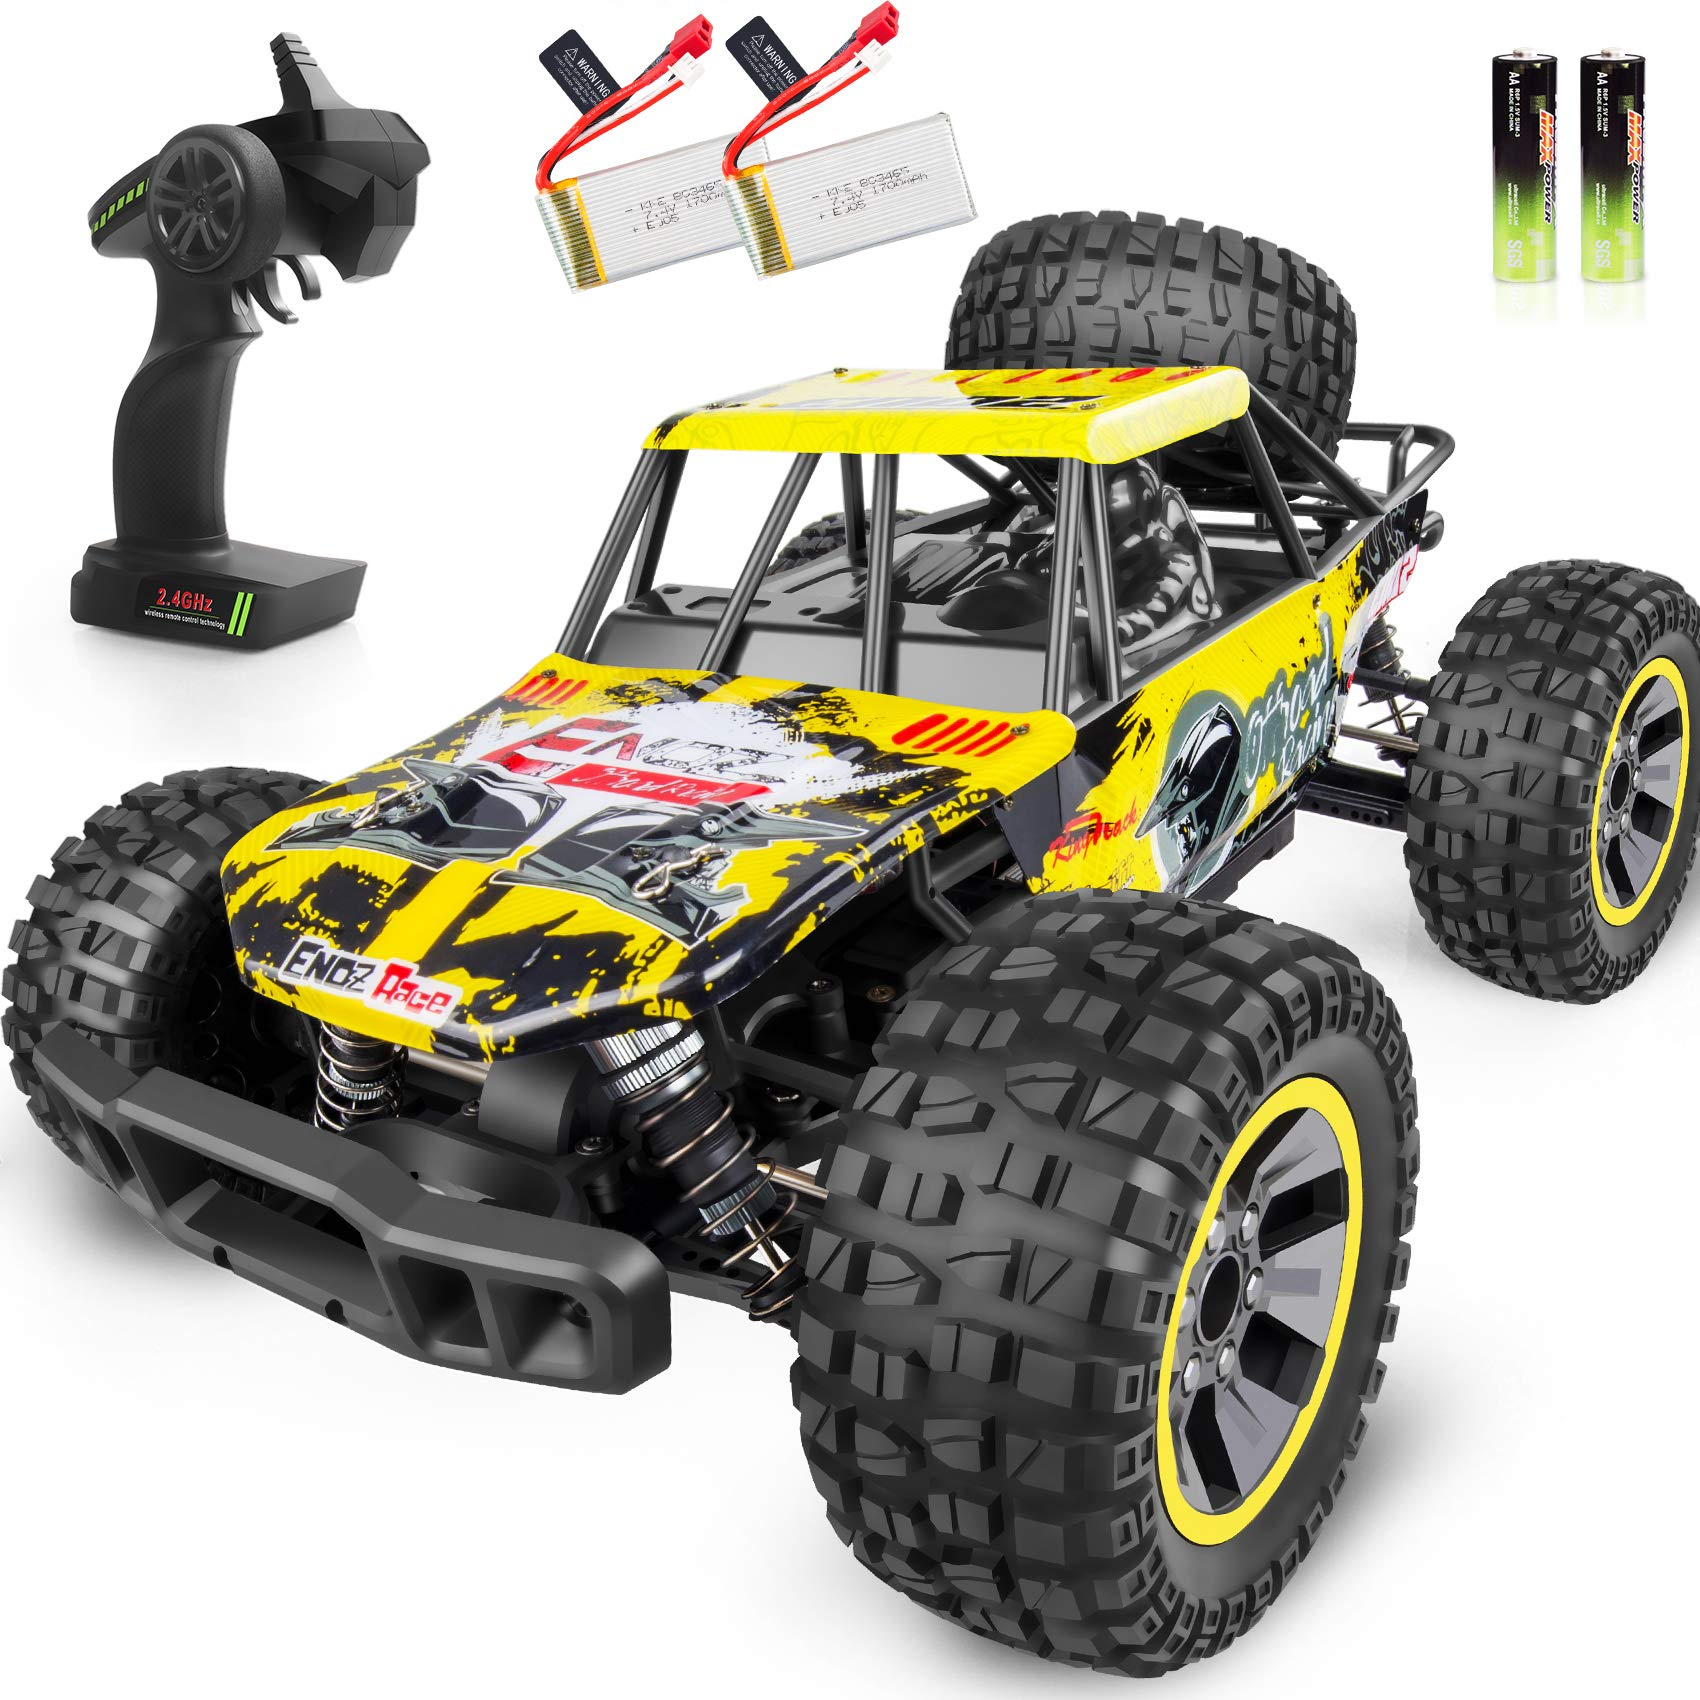 Whimswit Remote Control Car 1 10 Large Scale Electric Rc Car Off Road Monster Truck With High Speed 48km H Wide Range 100m 2 4ghz 4wd Anti Collision R C Cross Country Racing Vehicle Amazon Com Au Toys Games